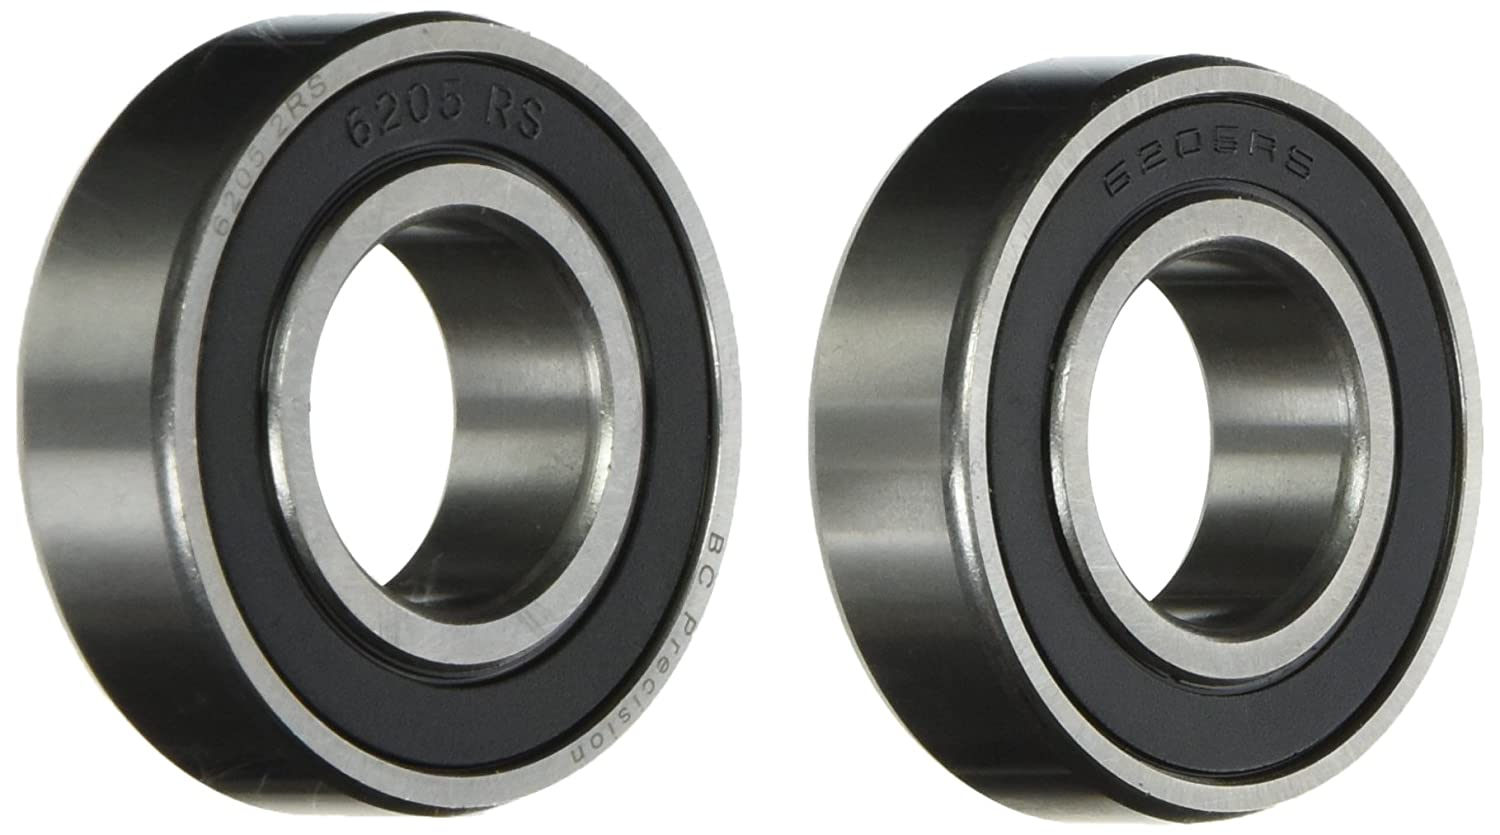 BC Precision BC-6205-2RS-2 Two (2) Sealed Bearings 25x52x15 Ball Bearings/Pre-Lubricated (Pack of 2)